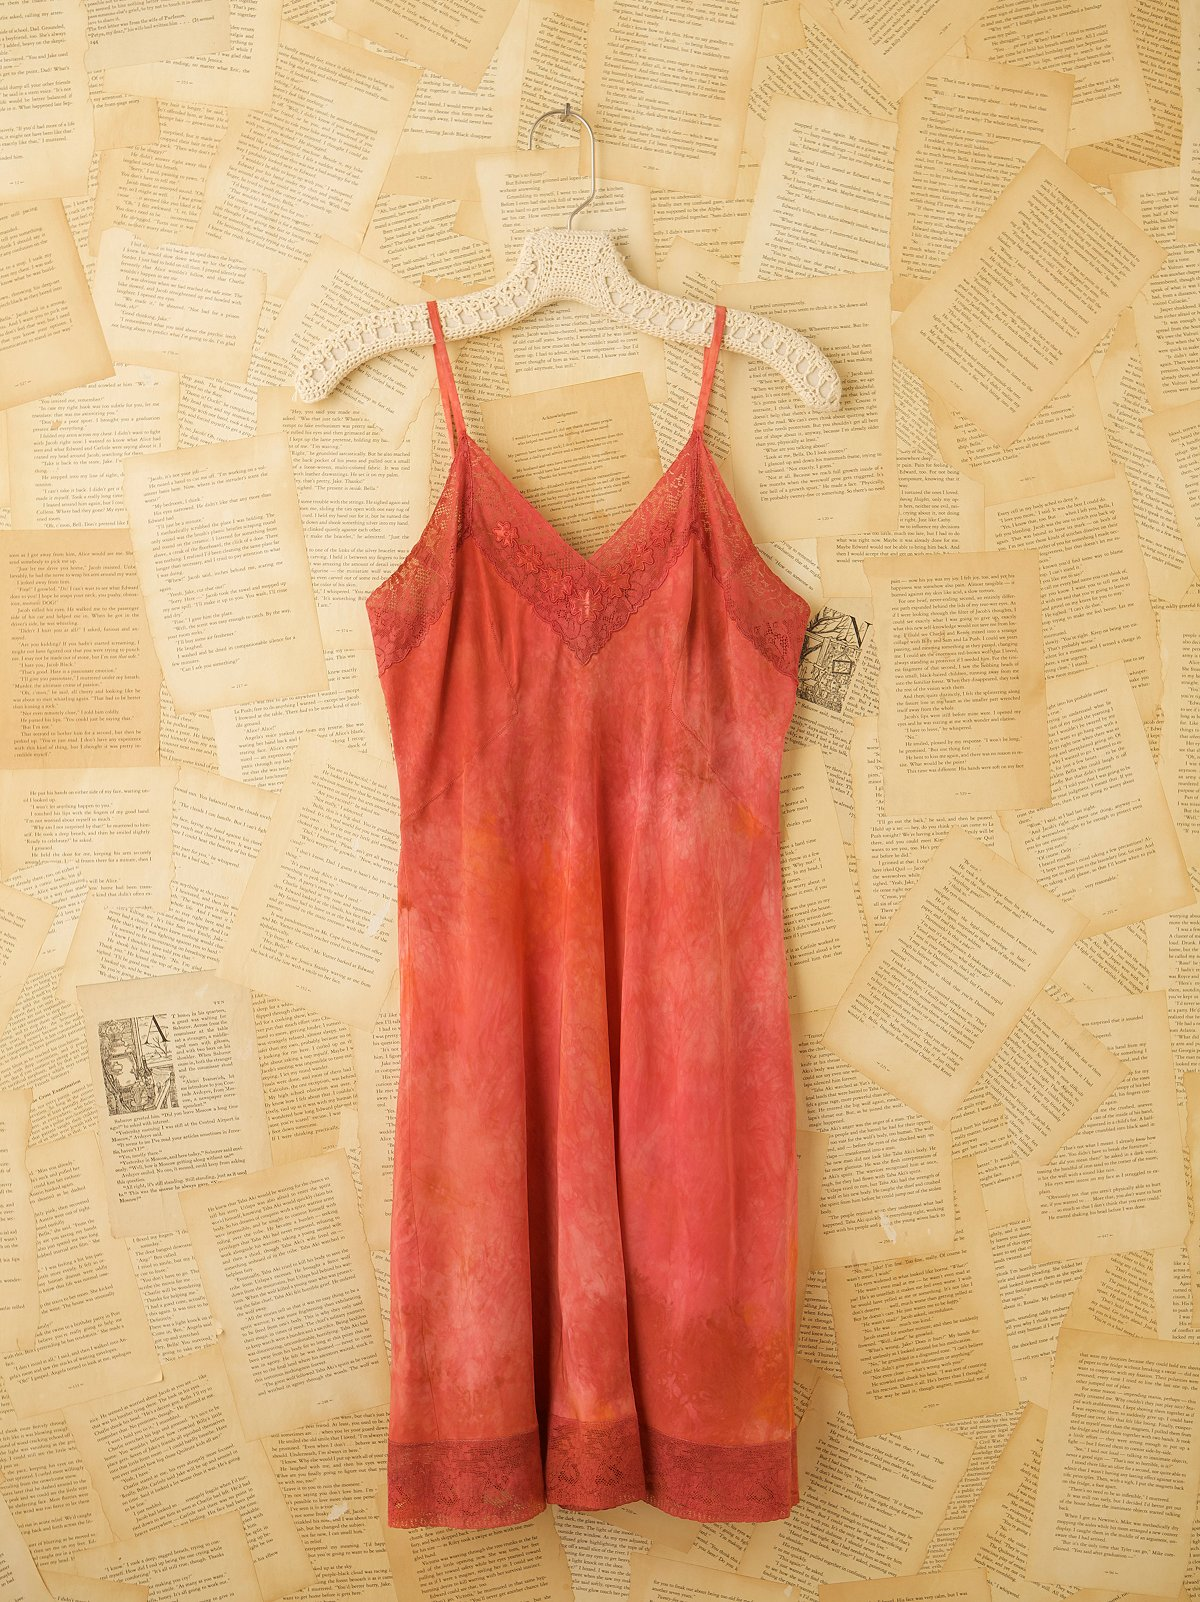 Vintage 1940s Hand Dyed Rayon Slip Dress